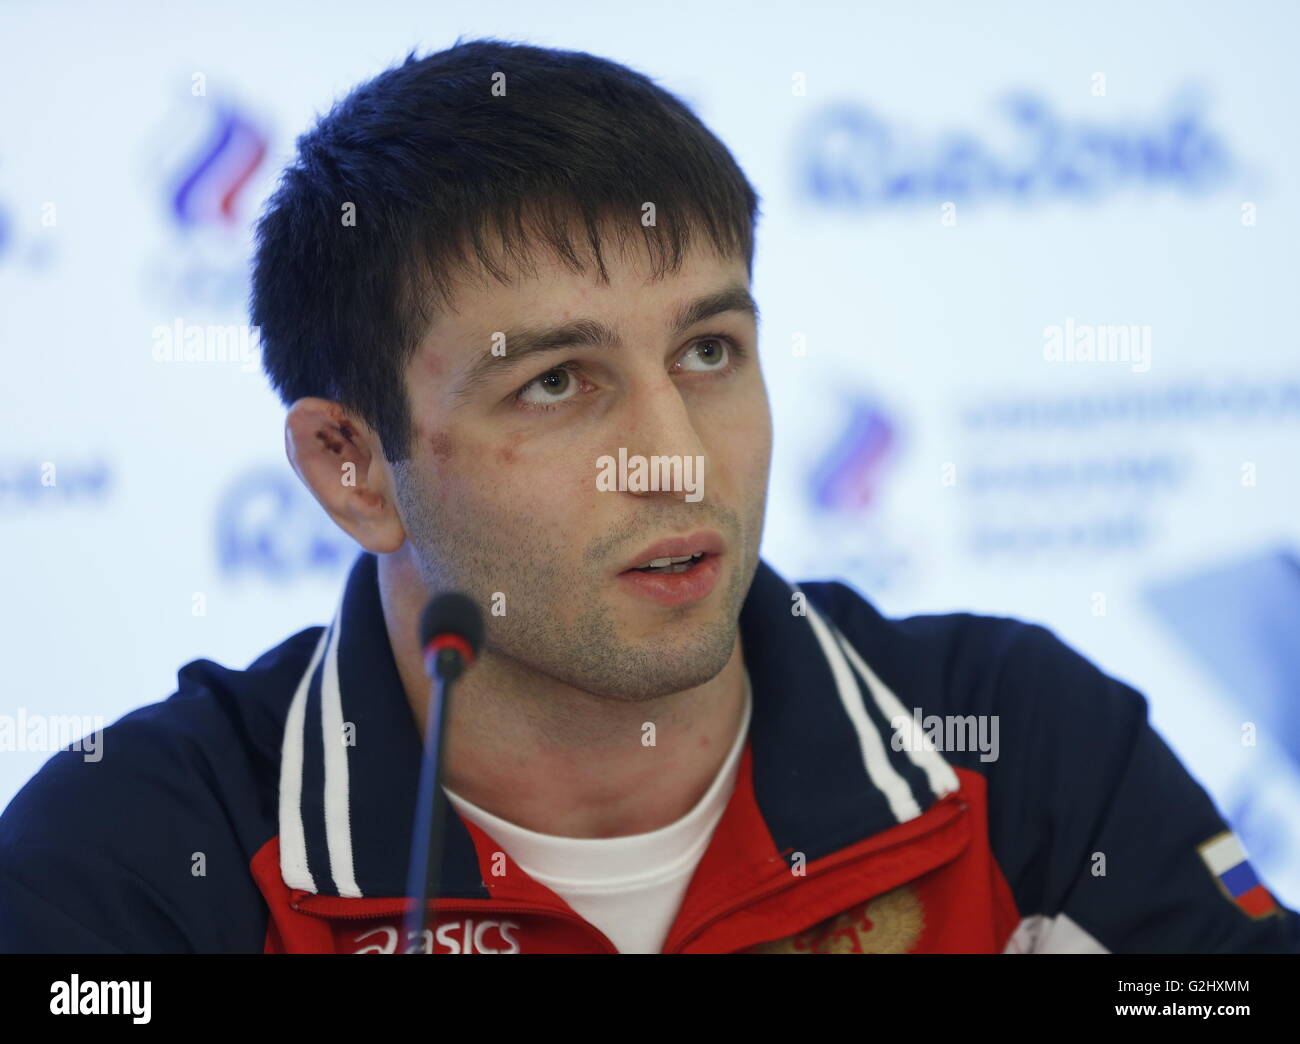 MOSCOW, RUSSIA - JUNE 1, 2016: Russian freestyle wrestler Soslan Ramonov attends a press conference on preparations - Stock Image